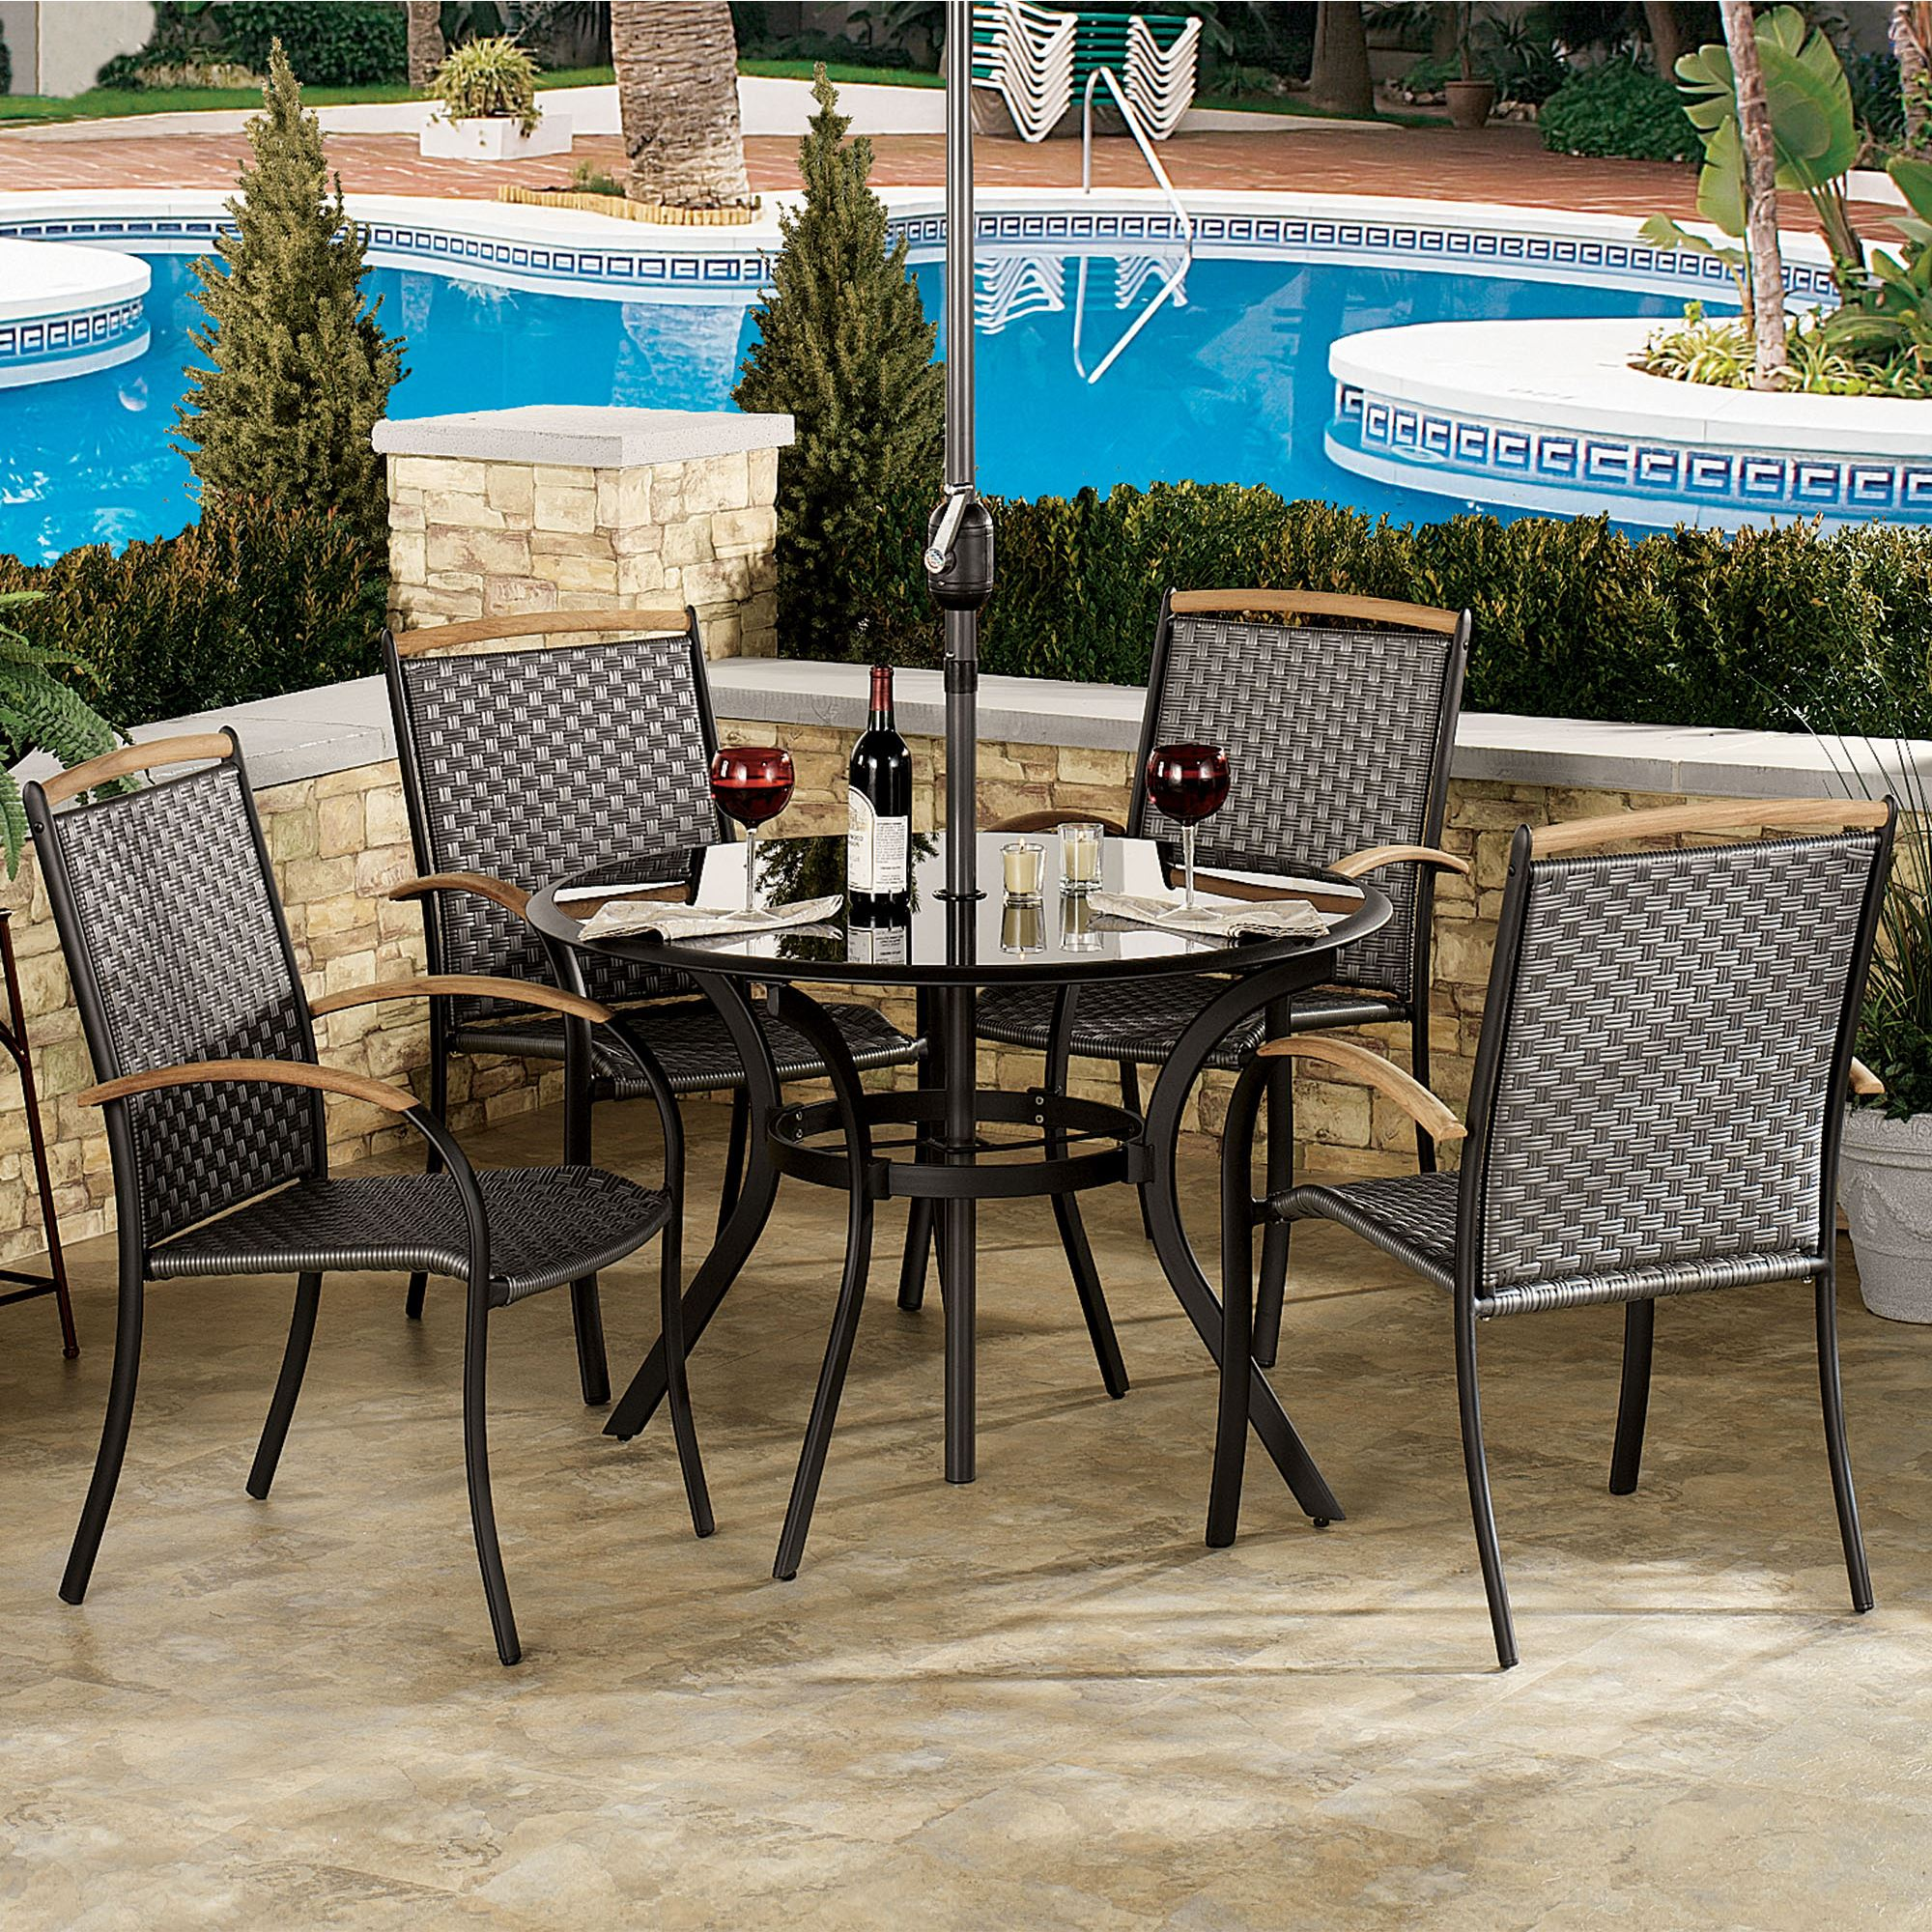 New Patio Dining Table Clearance